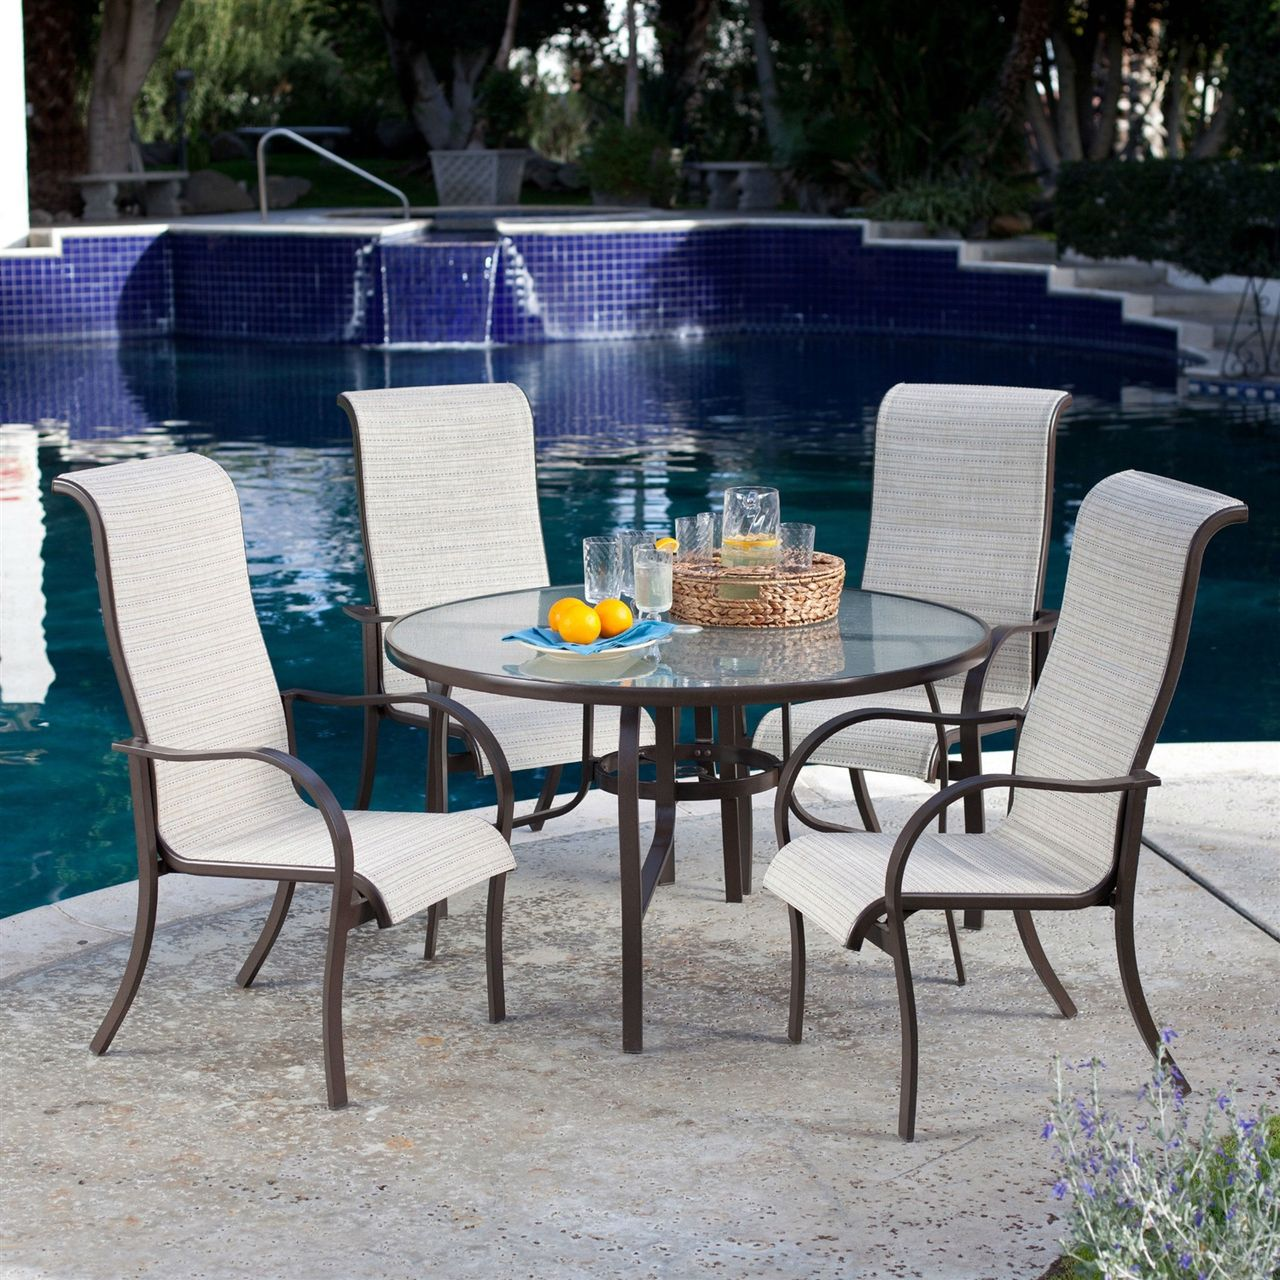 Round Table Patio Furniture Sets 5 Pc Patio Furniture Dining Set Round Table 4 Padded Sling